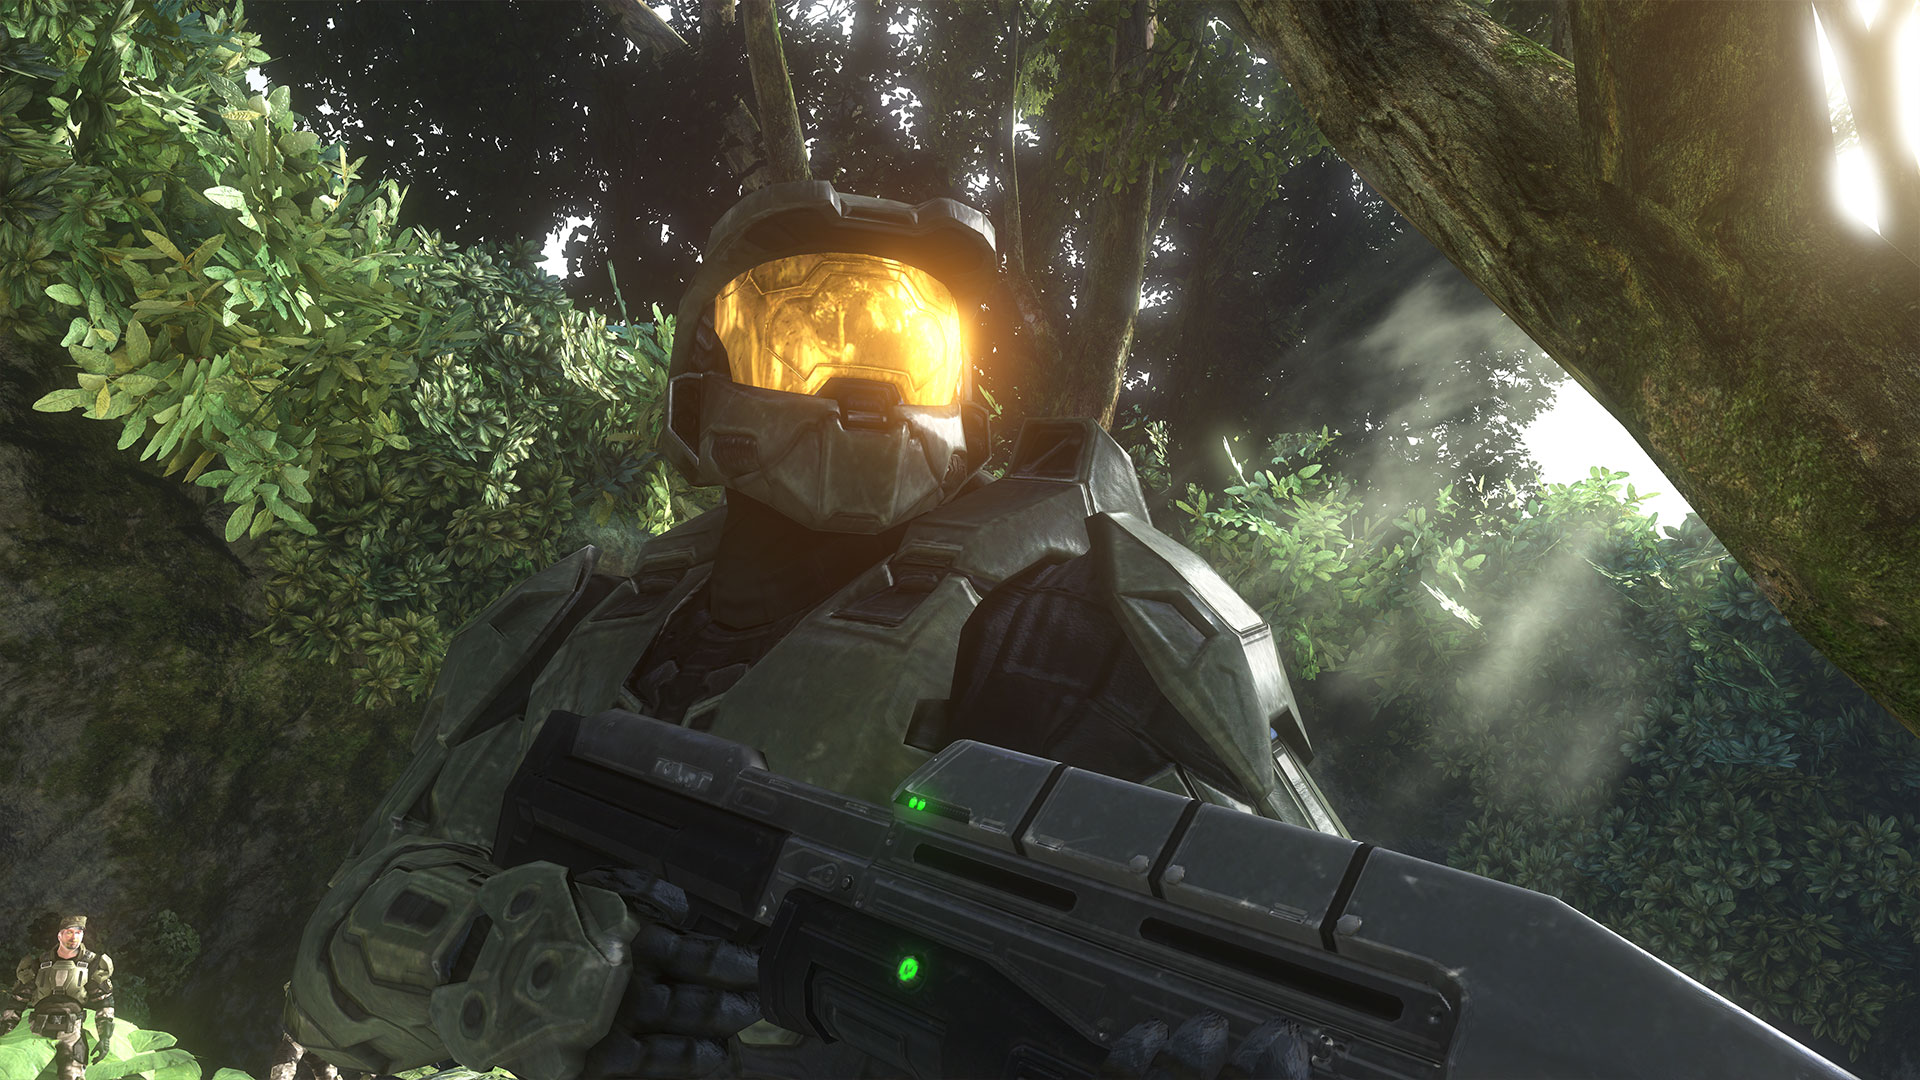 1920x1080 > Halo 3 Wallpapers